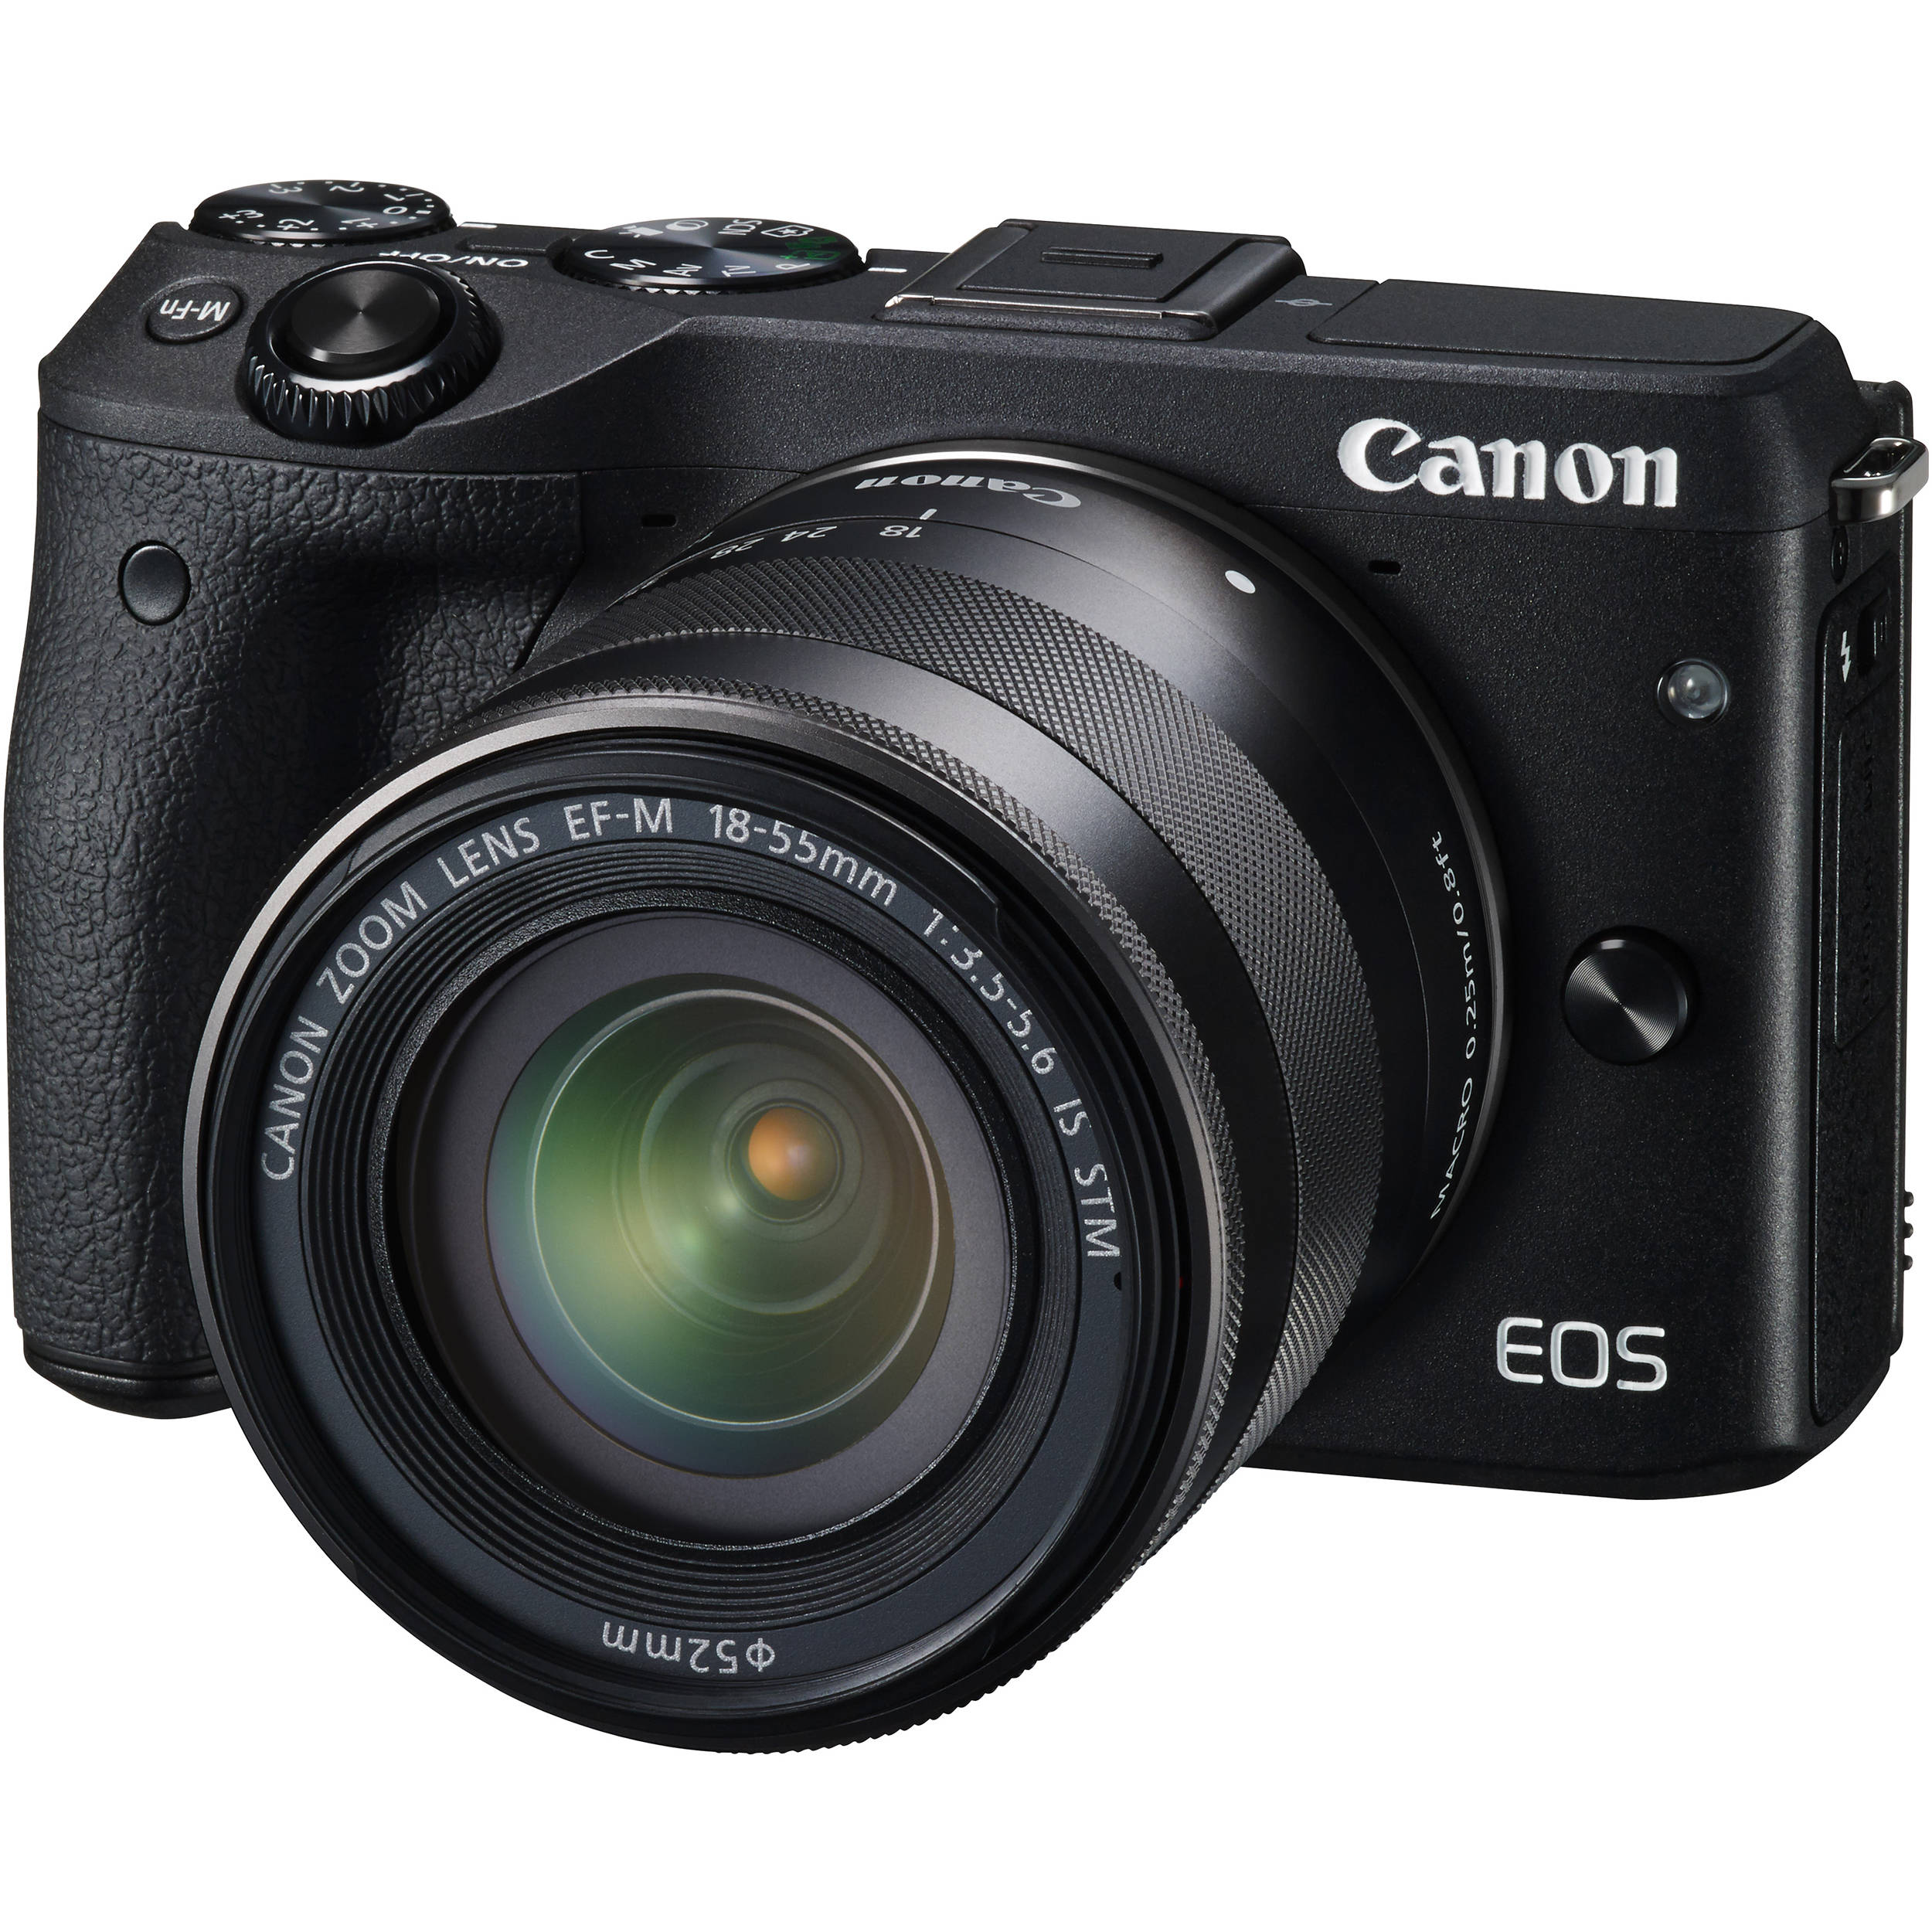 Precious Lens Used Canon Eos Mirrorless Digital Camera Photo Canon Eos M2 Manual Canon Eos M2 Mark Ii Review Canon Eos Mirrorless Digital Camera dpreview Canon Eos M2